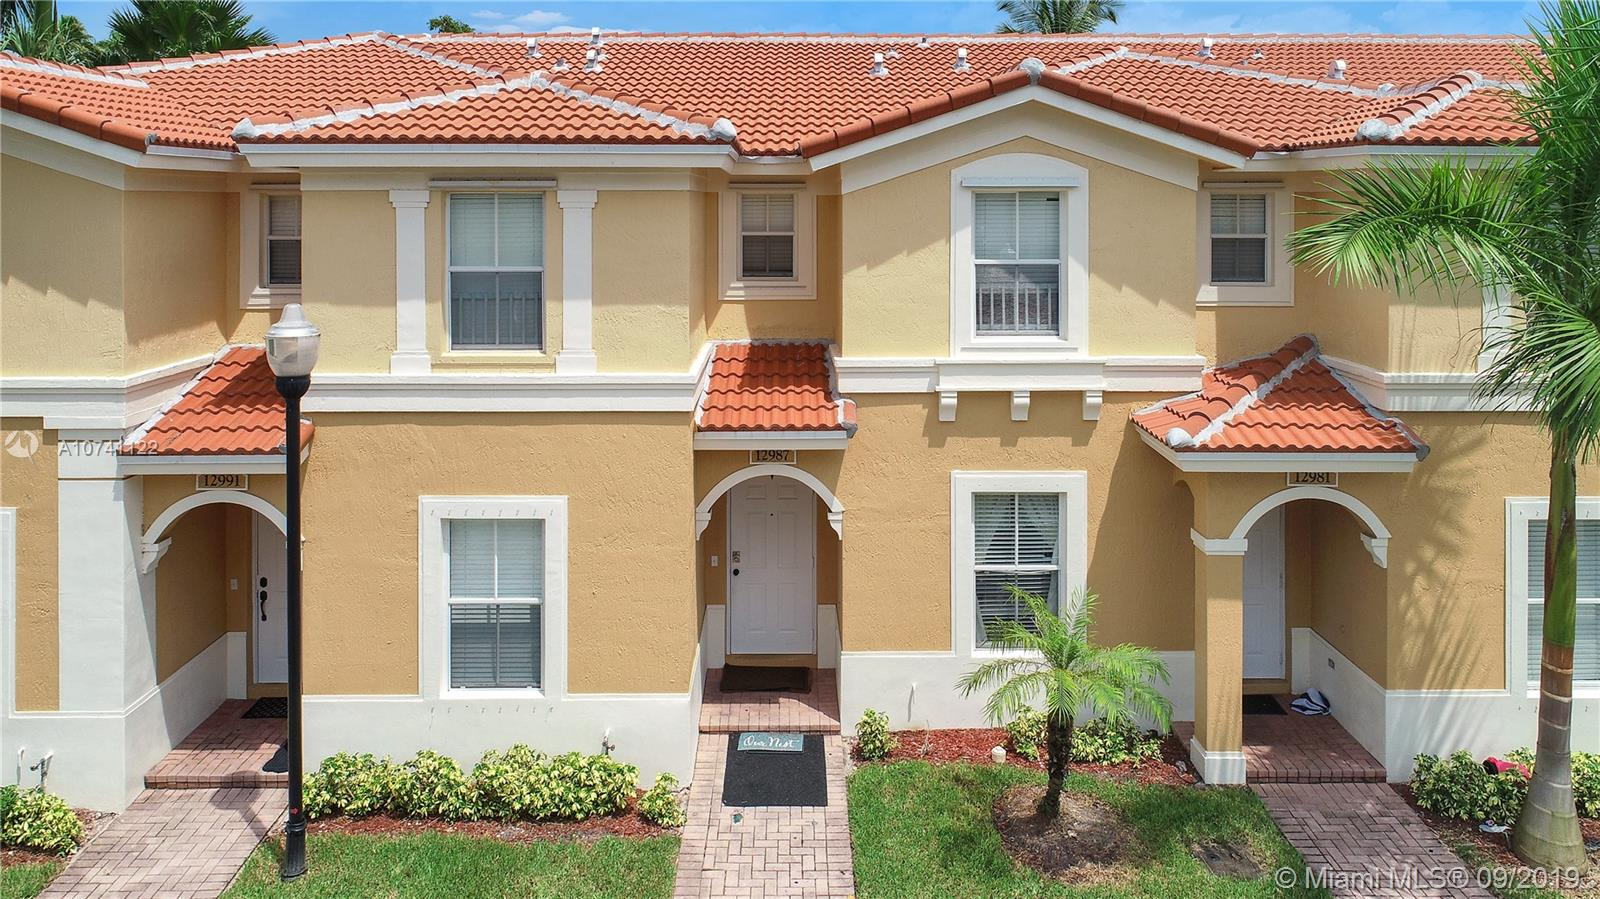 12987 SW 30 #131 For Sale A10741122, FL